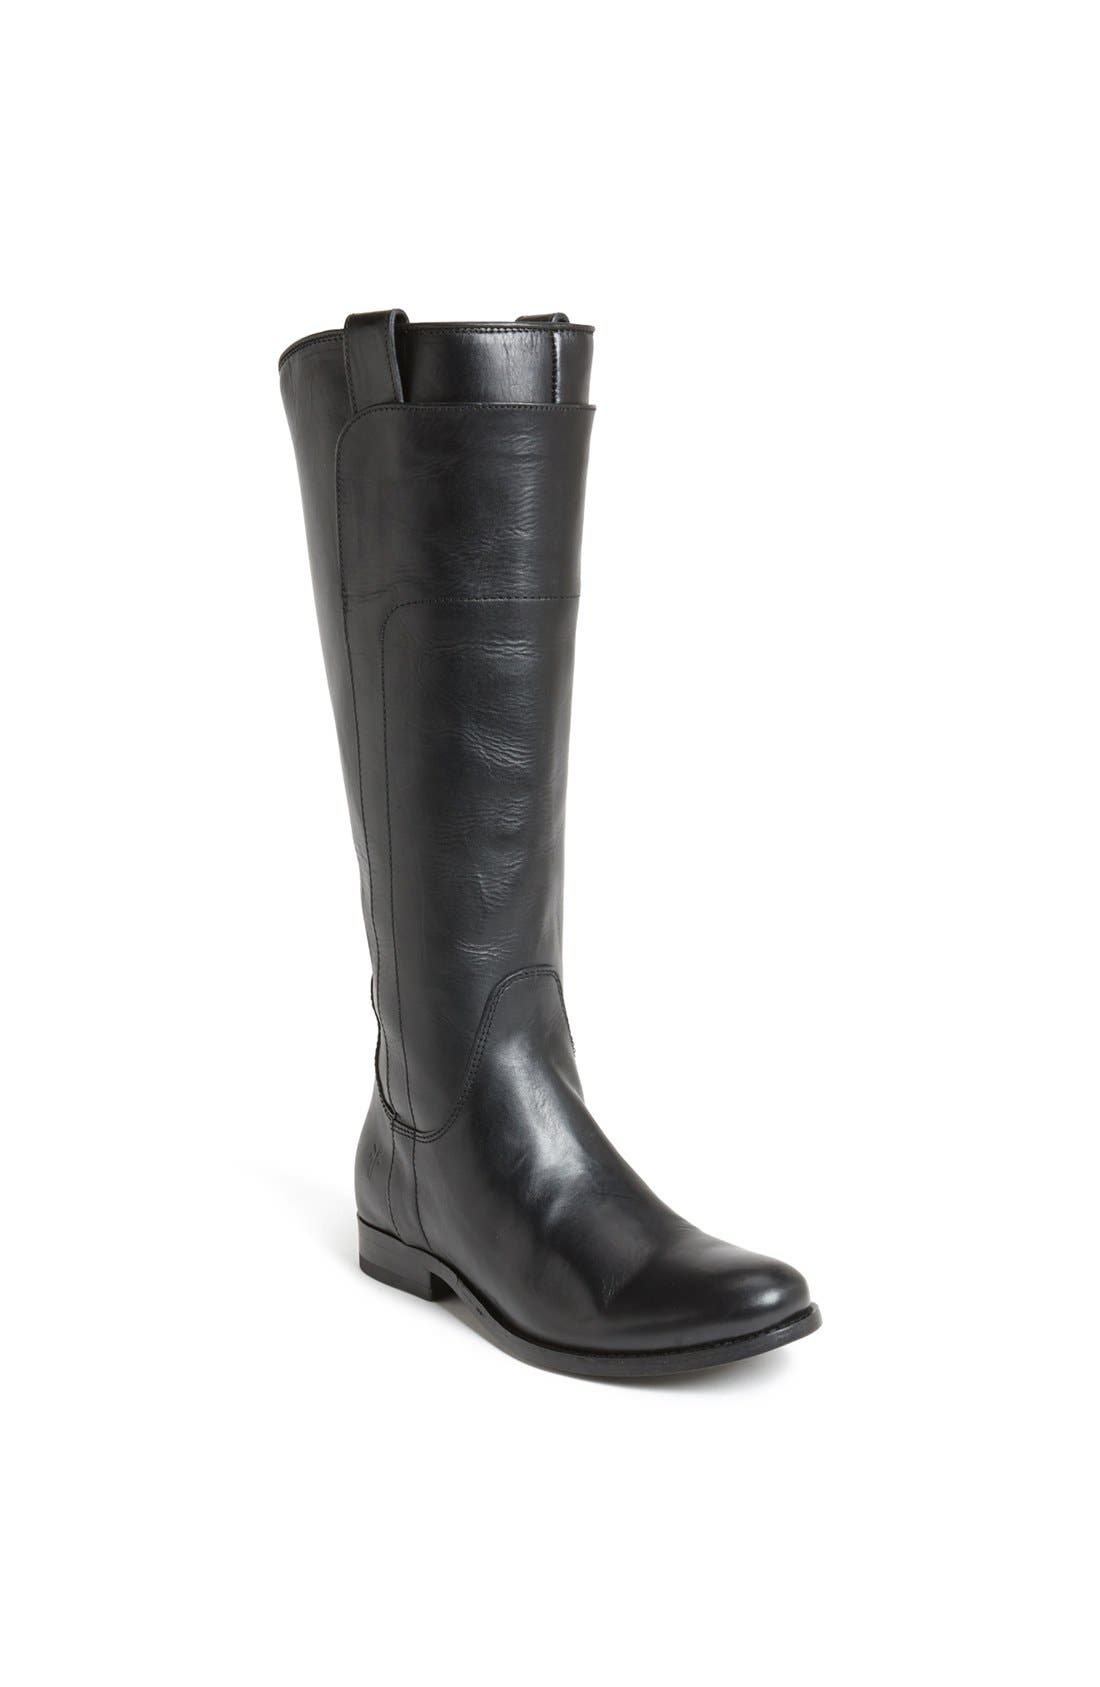 Main Image - Frye 'Melissa' Riding Boot